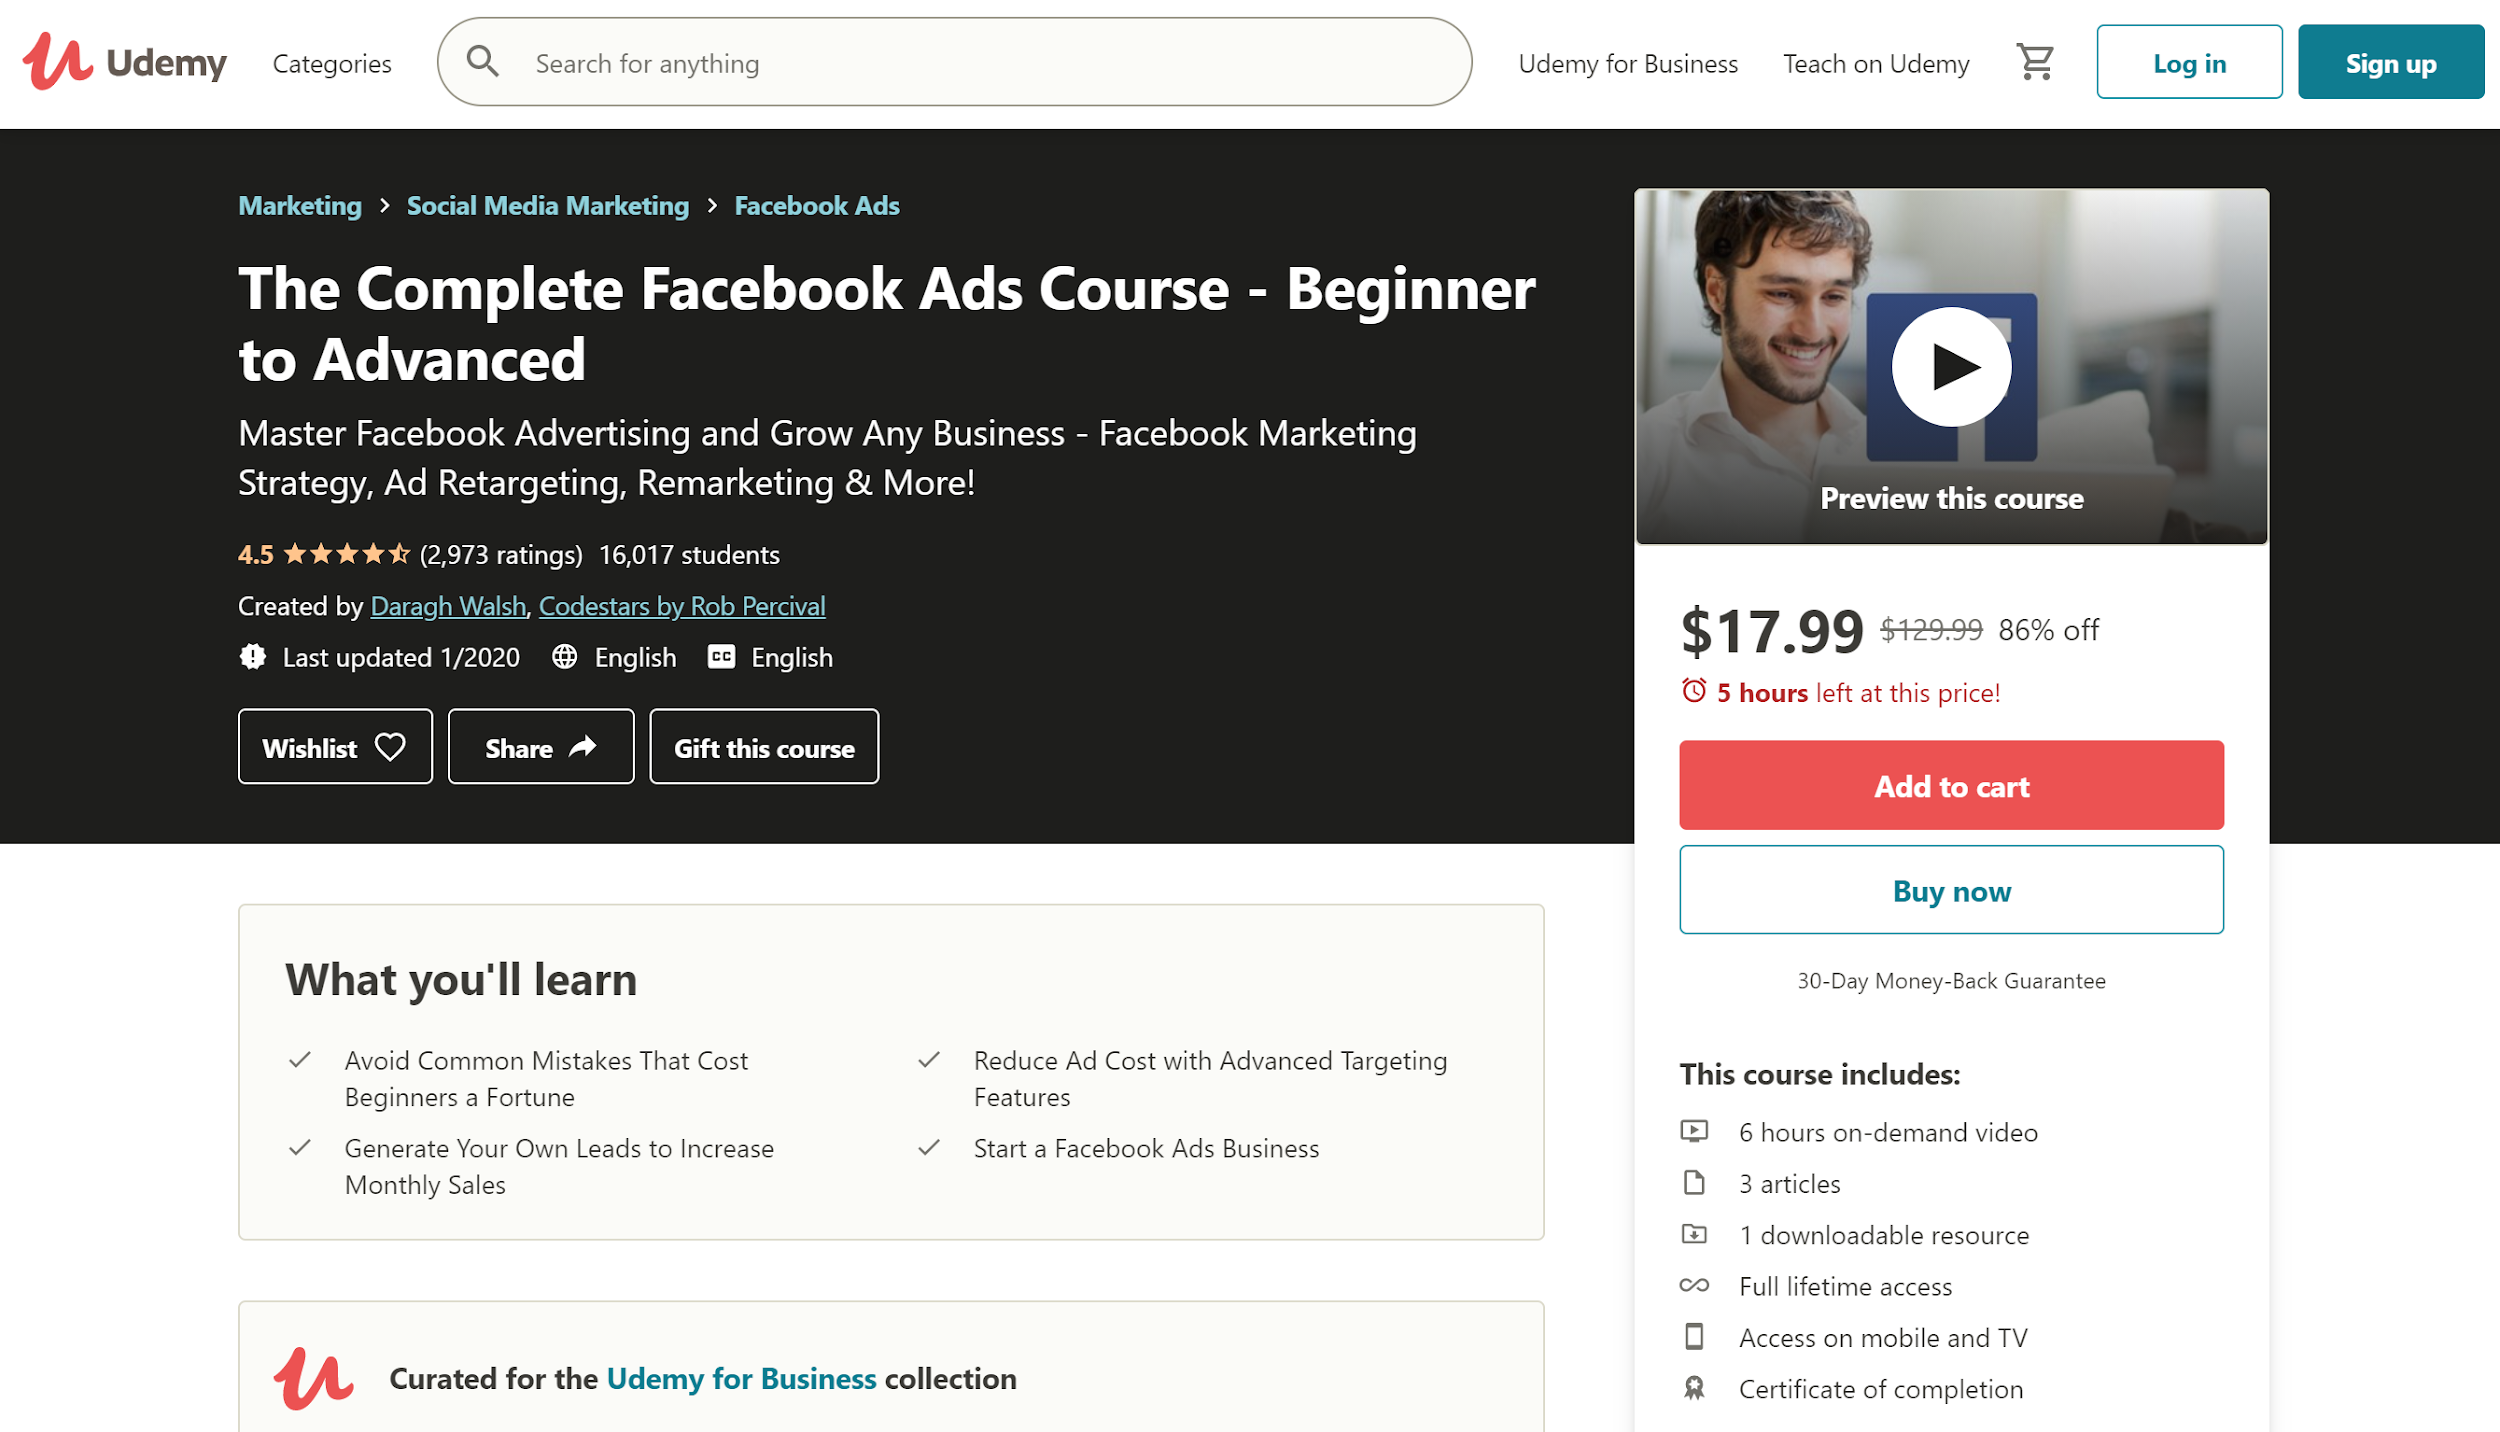 Udemy The Complete Facebook Ads Course - Beginner to Advanced